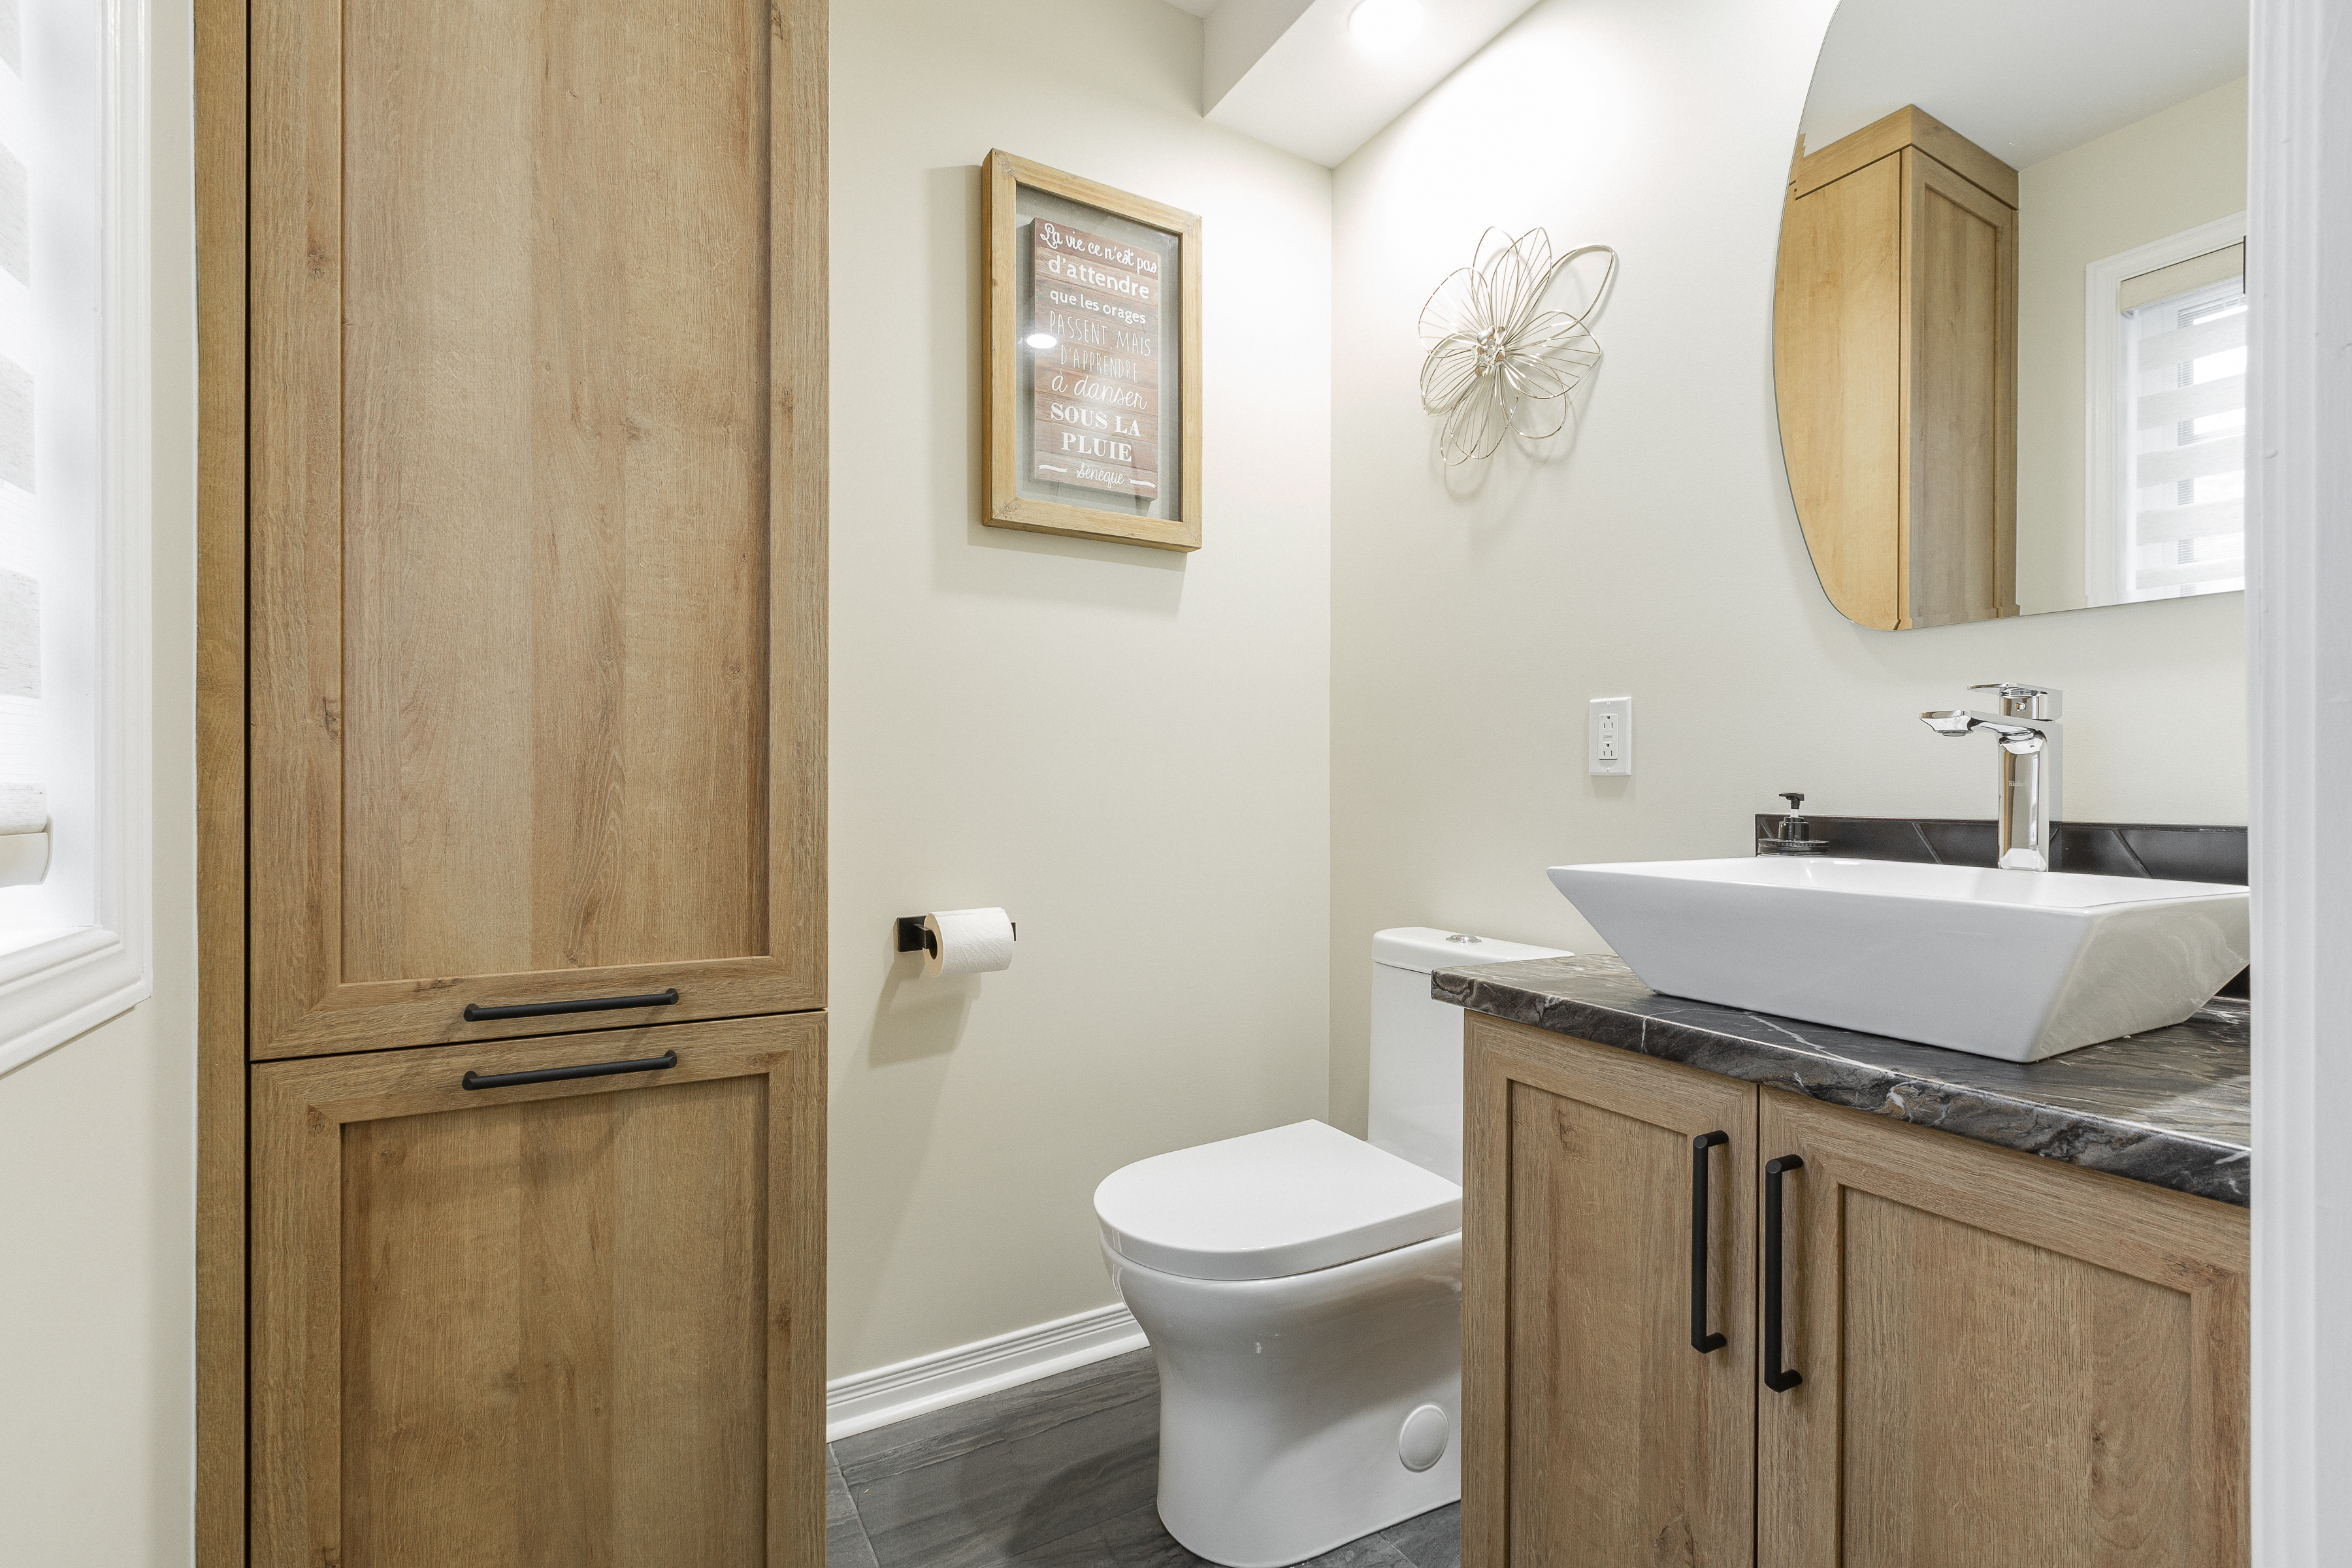 small powder room with wooden cabinets and light colored walls